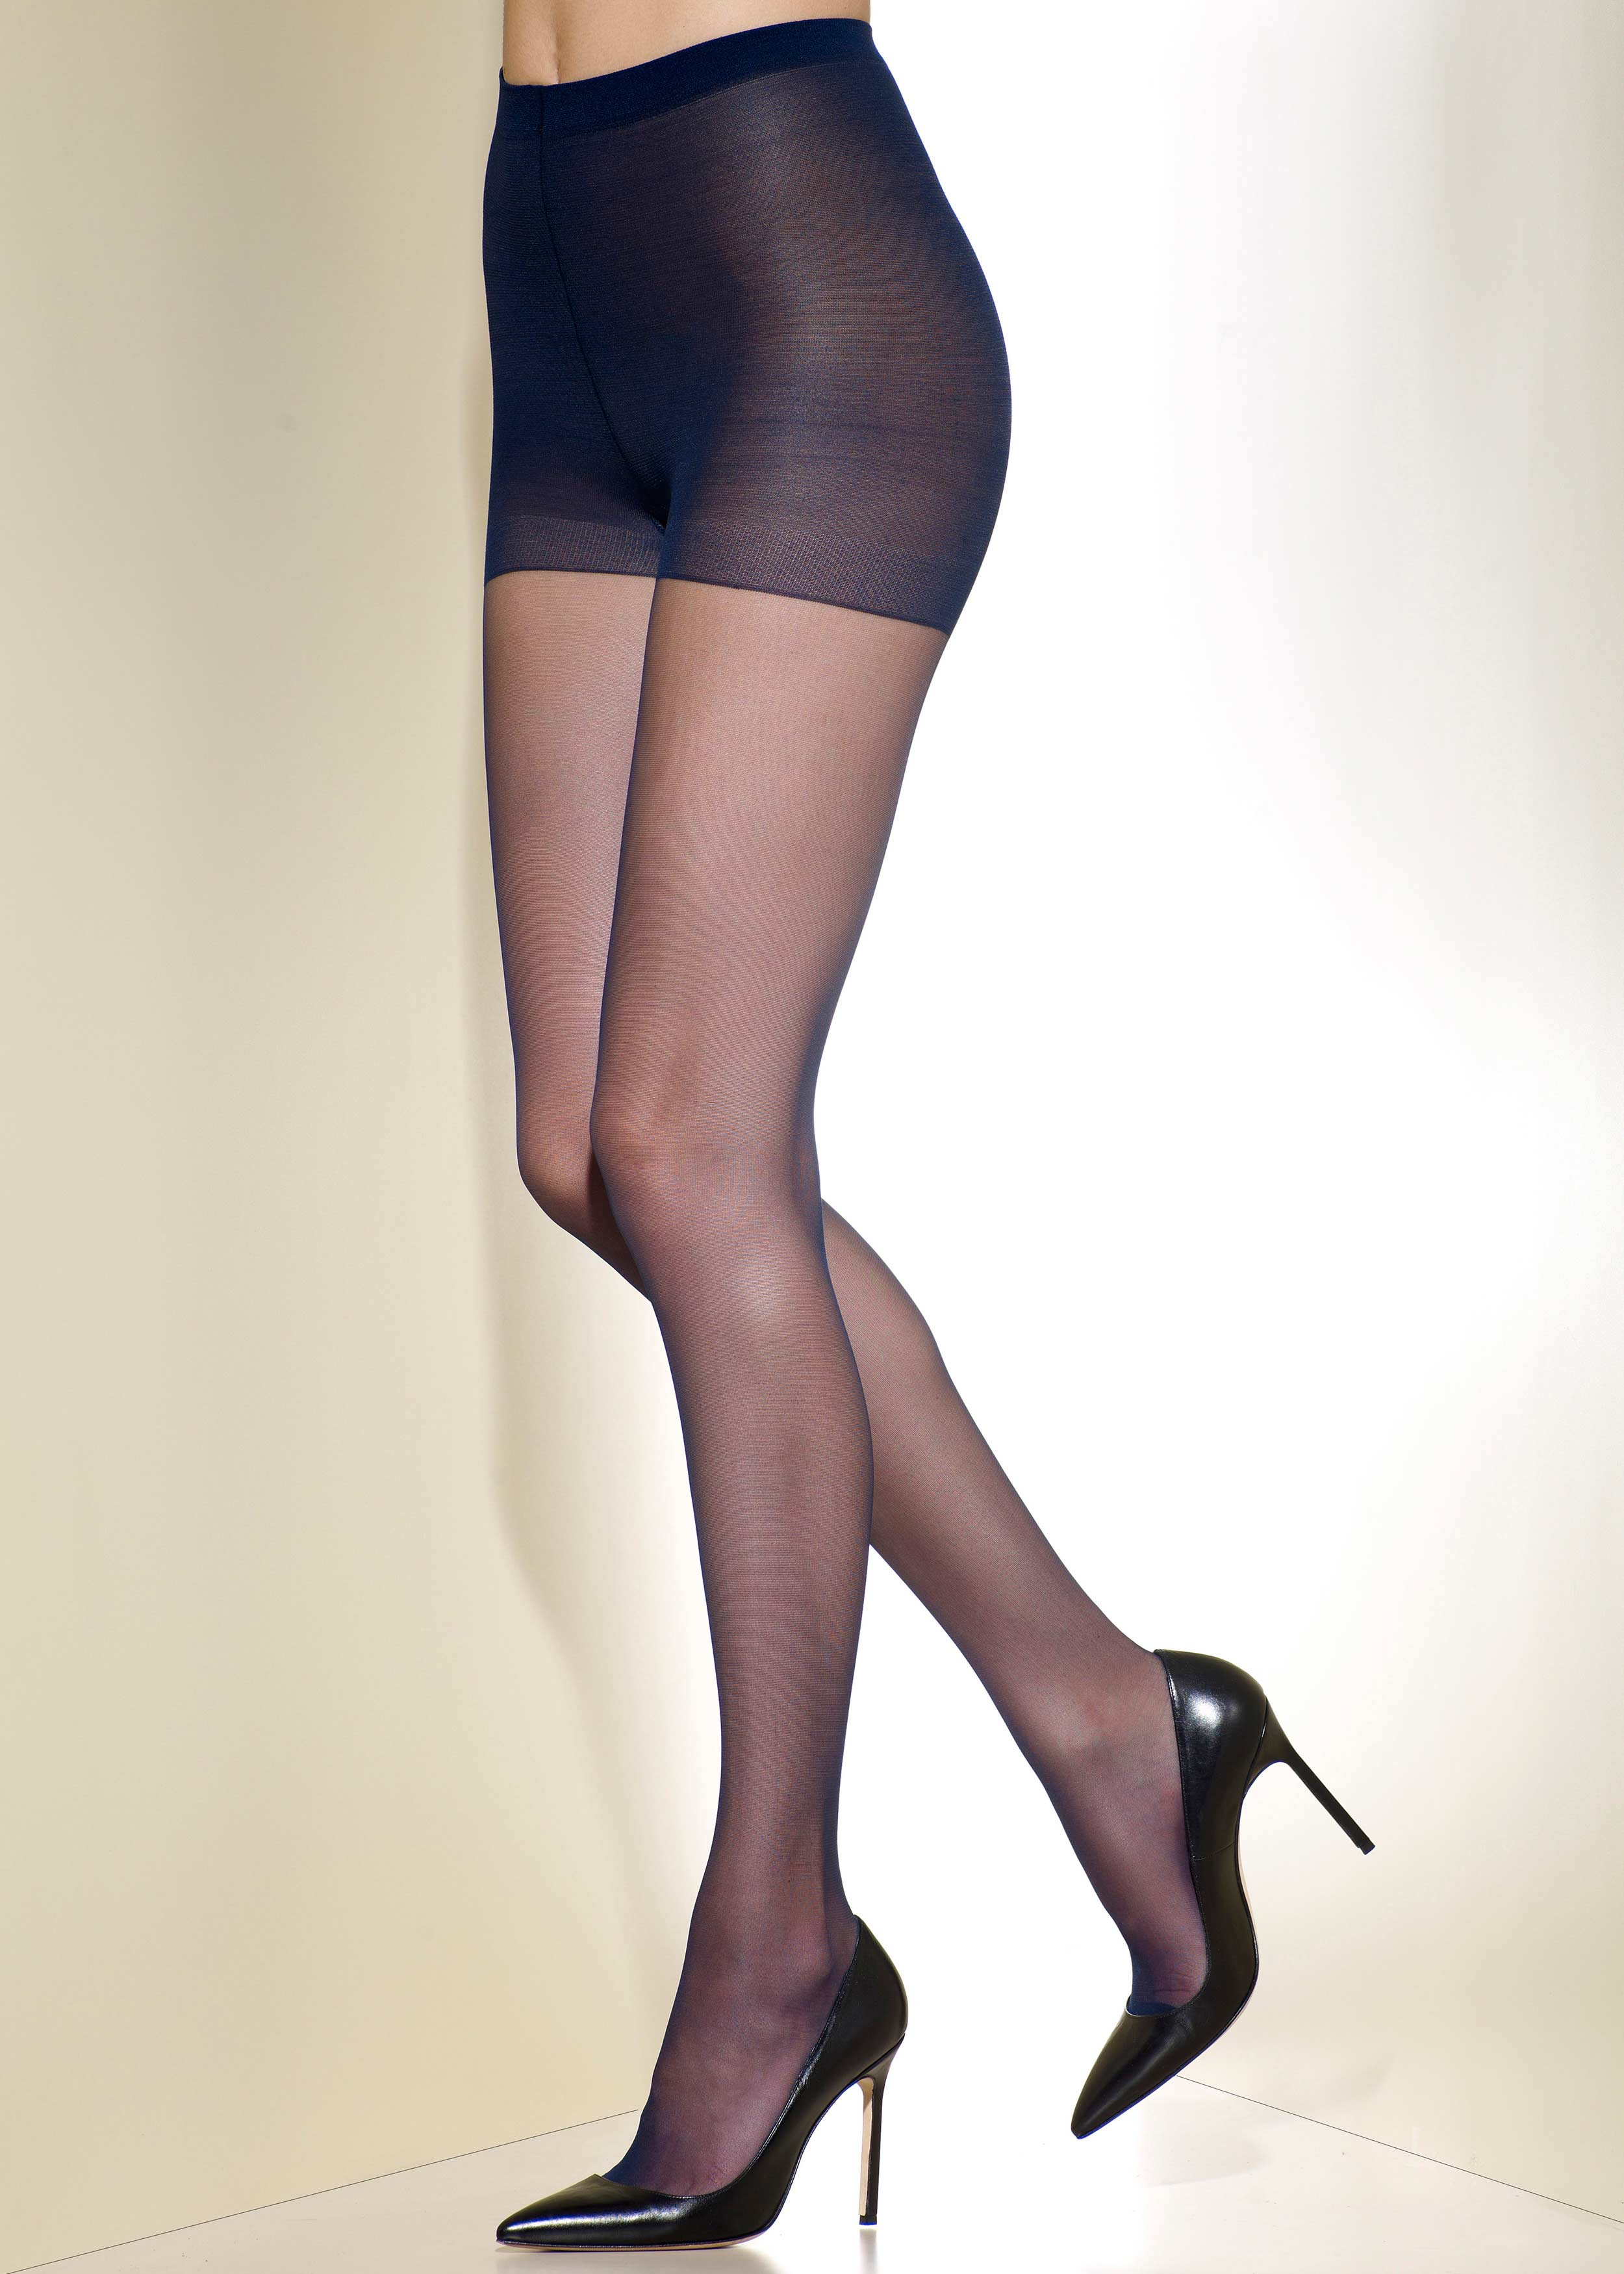 Best Pantyhose Best Pantyhose